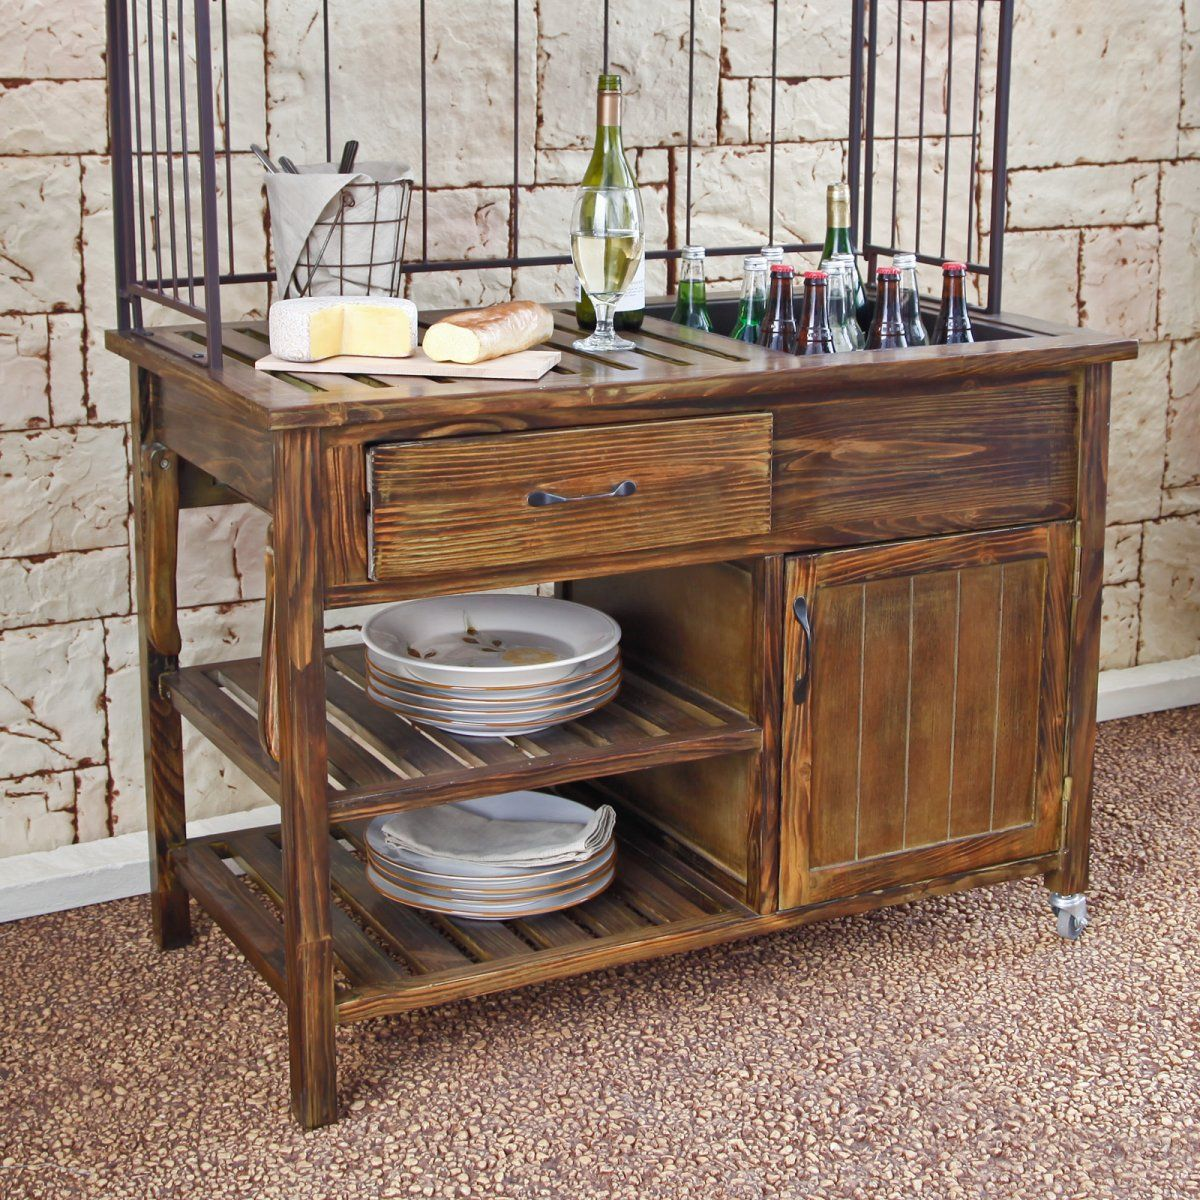 courtyard rustic outdoor buffet patio accessories at patio rh pinterest com outdoor patio buffet furniture outdoor buffet cabinet furniture